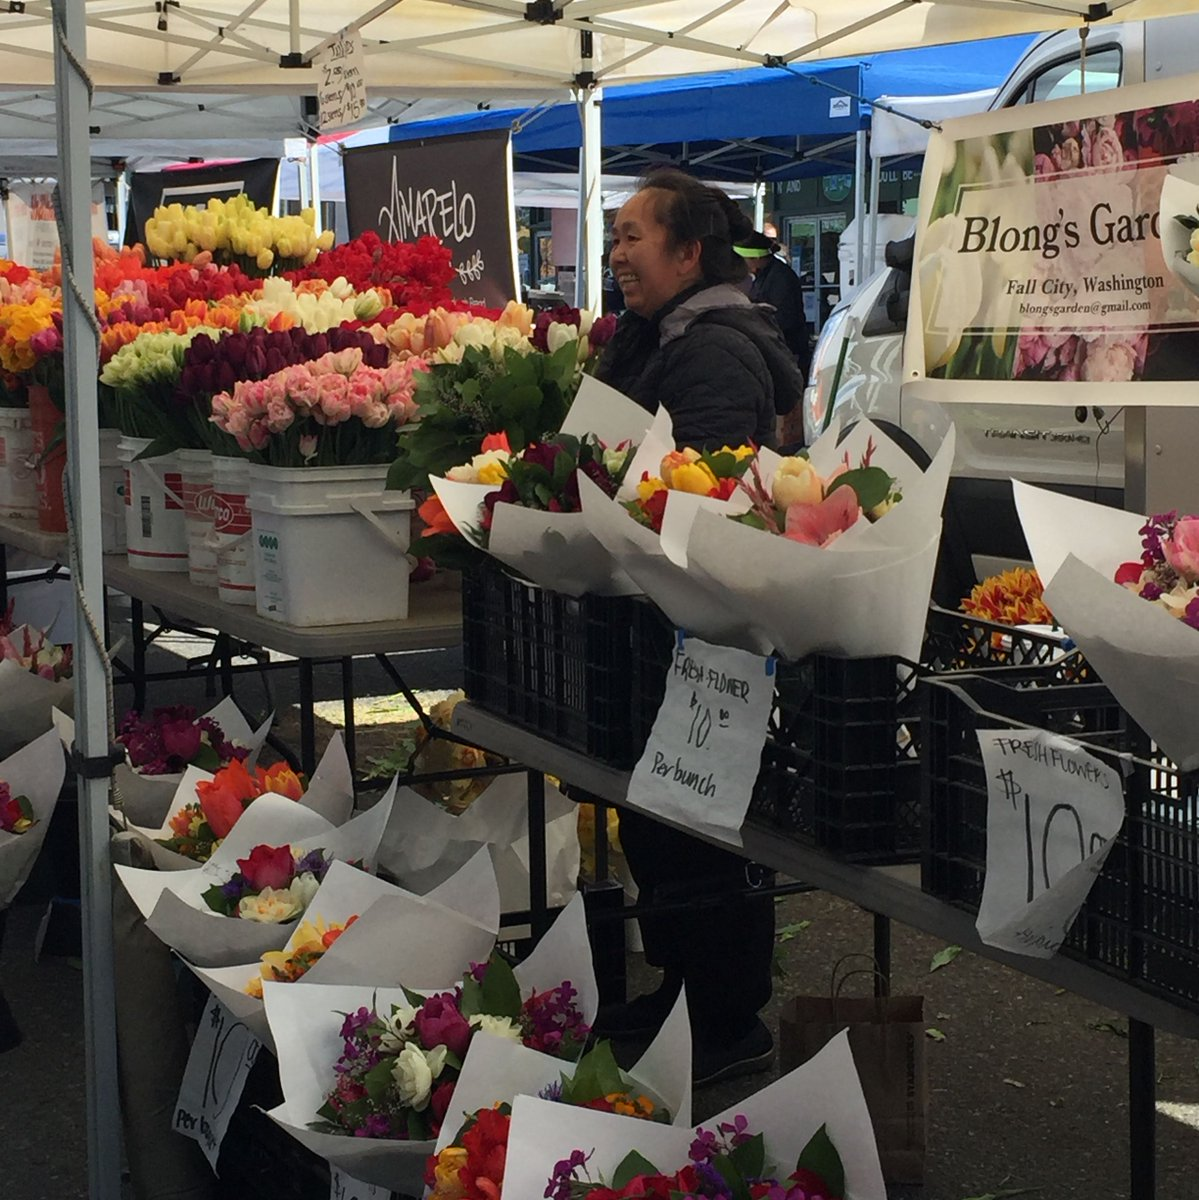 Farmers Market Began Its 2009 Season >> Seattle Farmers Mkts Seattlefarmmkts Twitter